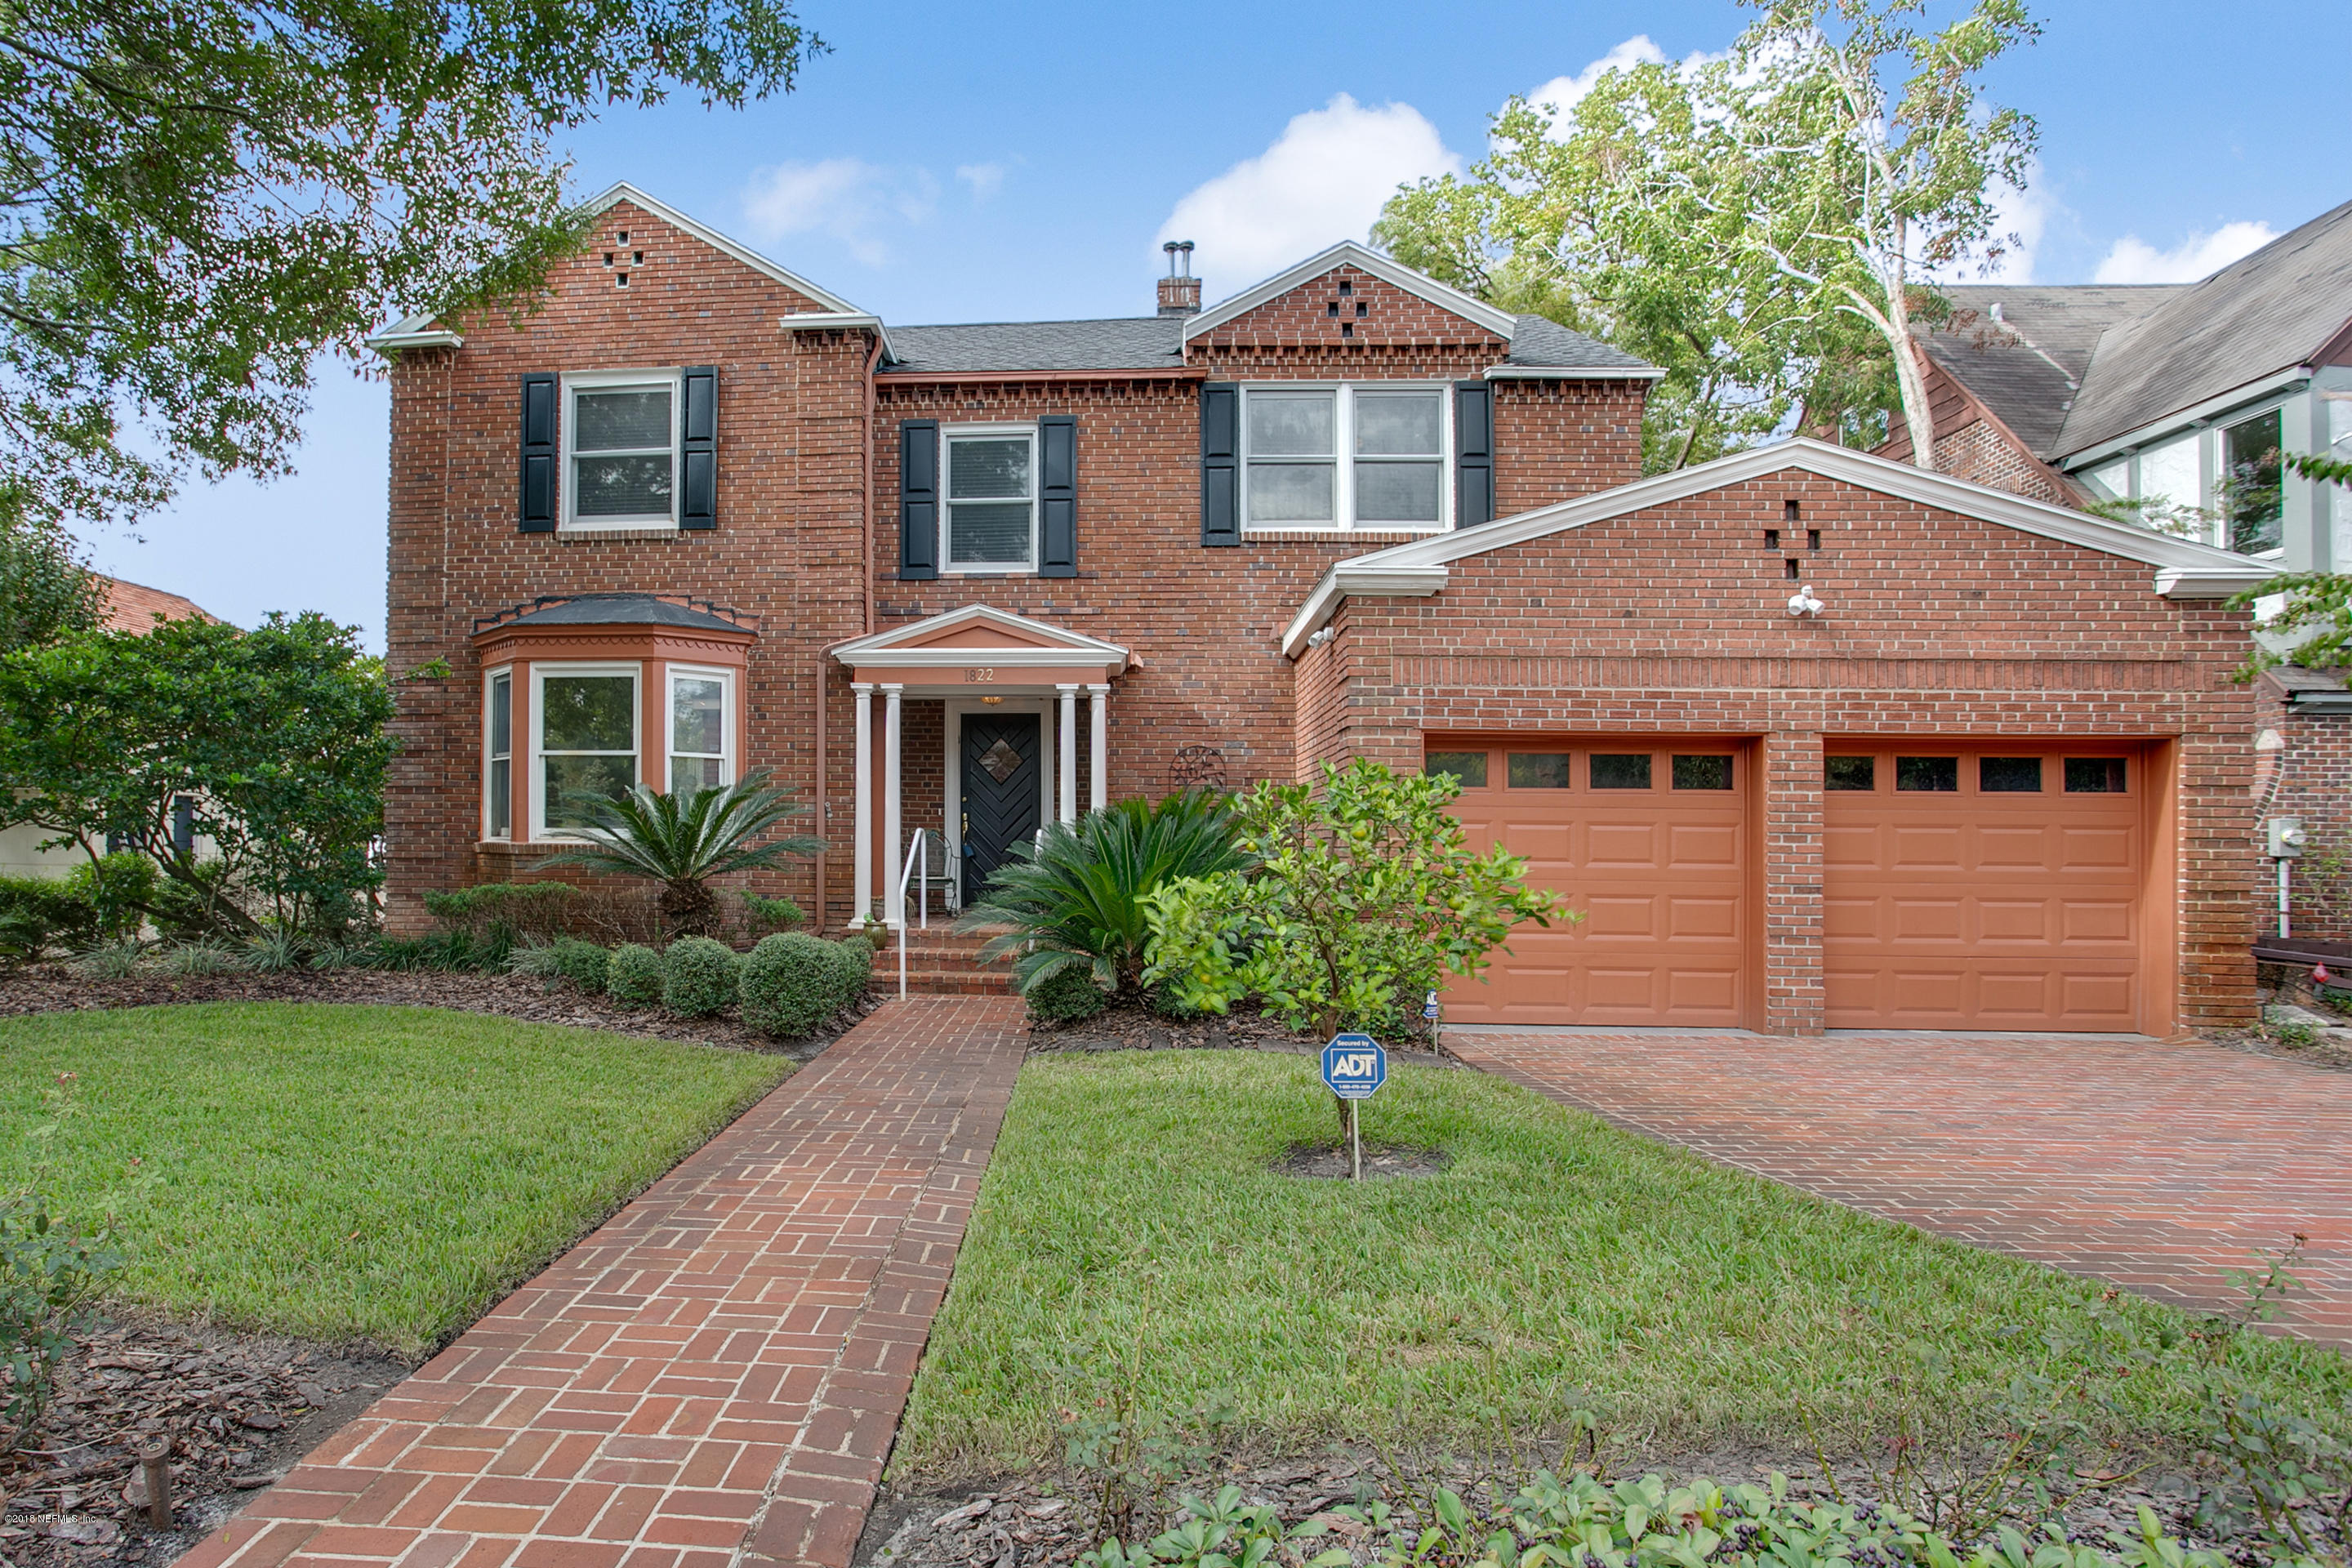 1822 RIVER, JACKSONVILLE, FLORIDA 32207, 3 Bedrooms Bedrooms, ,2 BathroomsBathrooms,Residential - single family,For sale,RIVER,964345